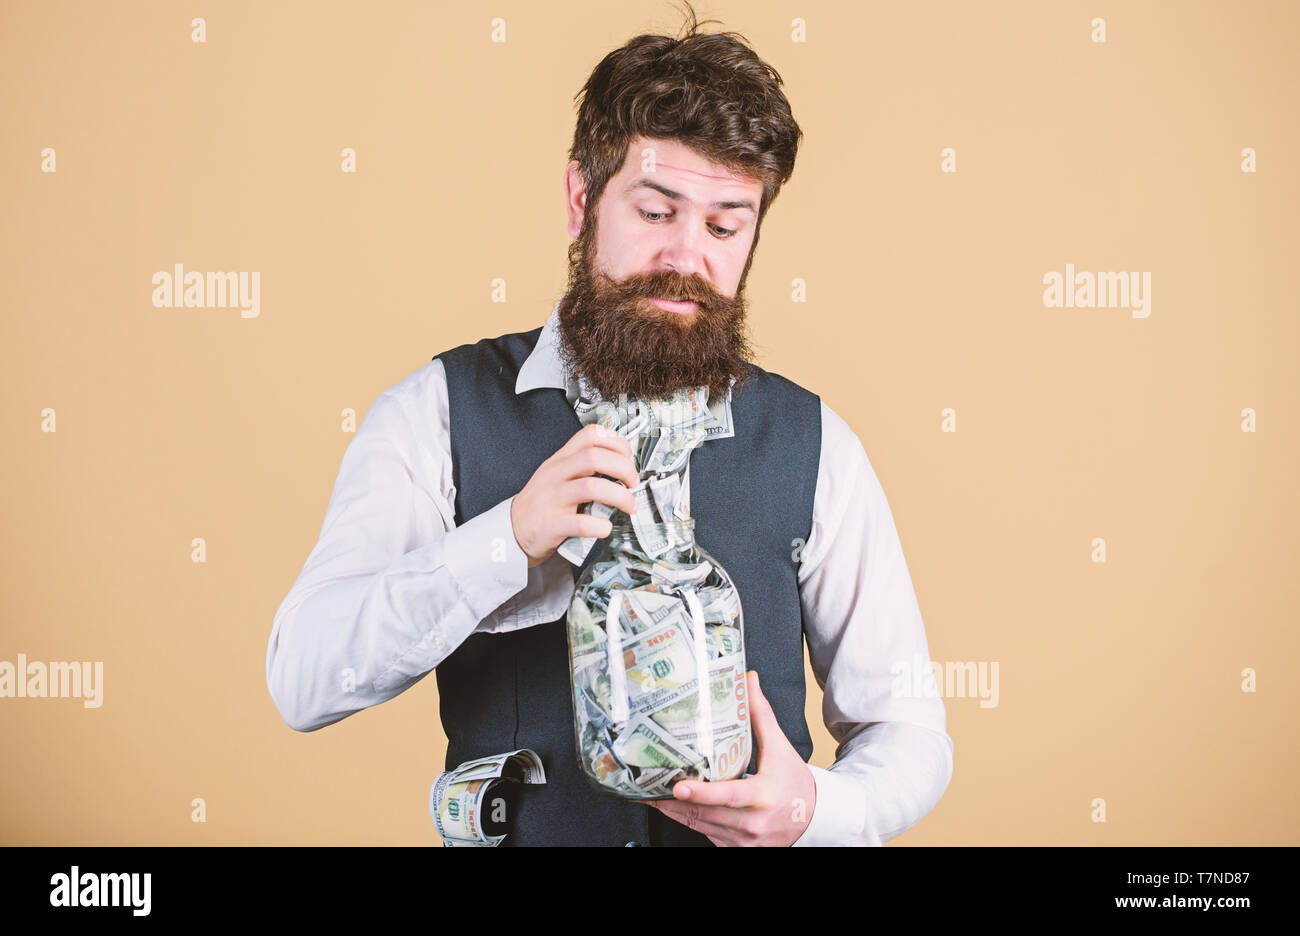 Personal accountant. Businessman with his dollar savings. Richness and wellbeing. Security and money savings. Banking concept. Man bearded guy hold jar full of cash savings. Safe place to keep money. - Stock Image